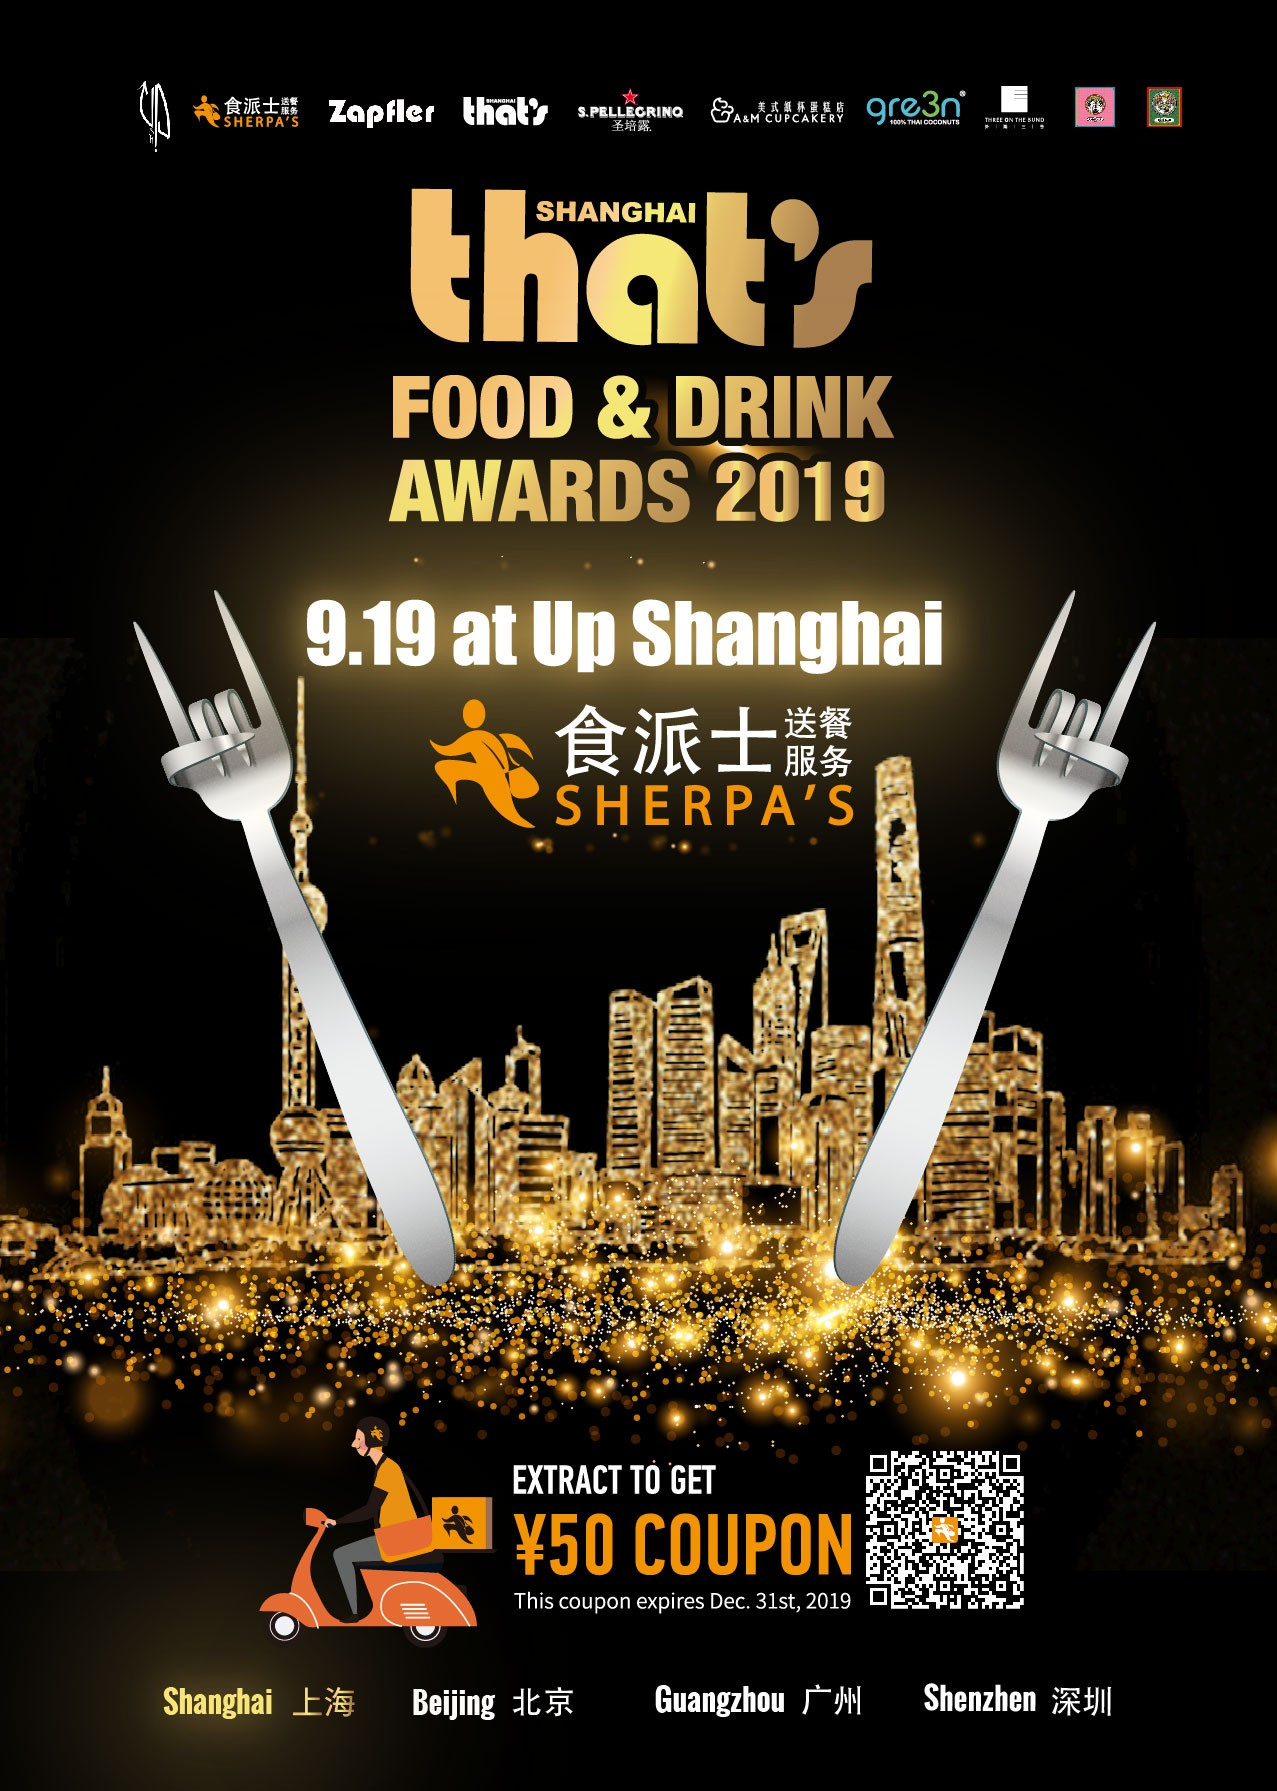 2019 That's Shanghai Food & Drink Awards Tickets on Sale Now!